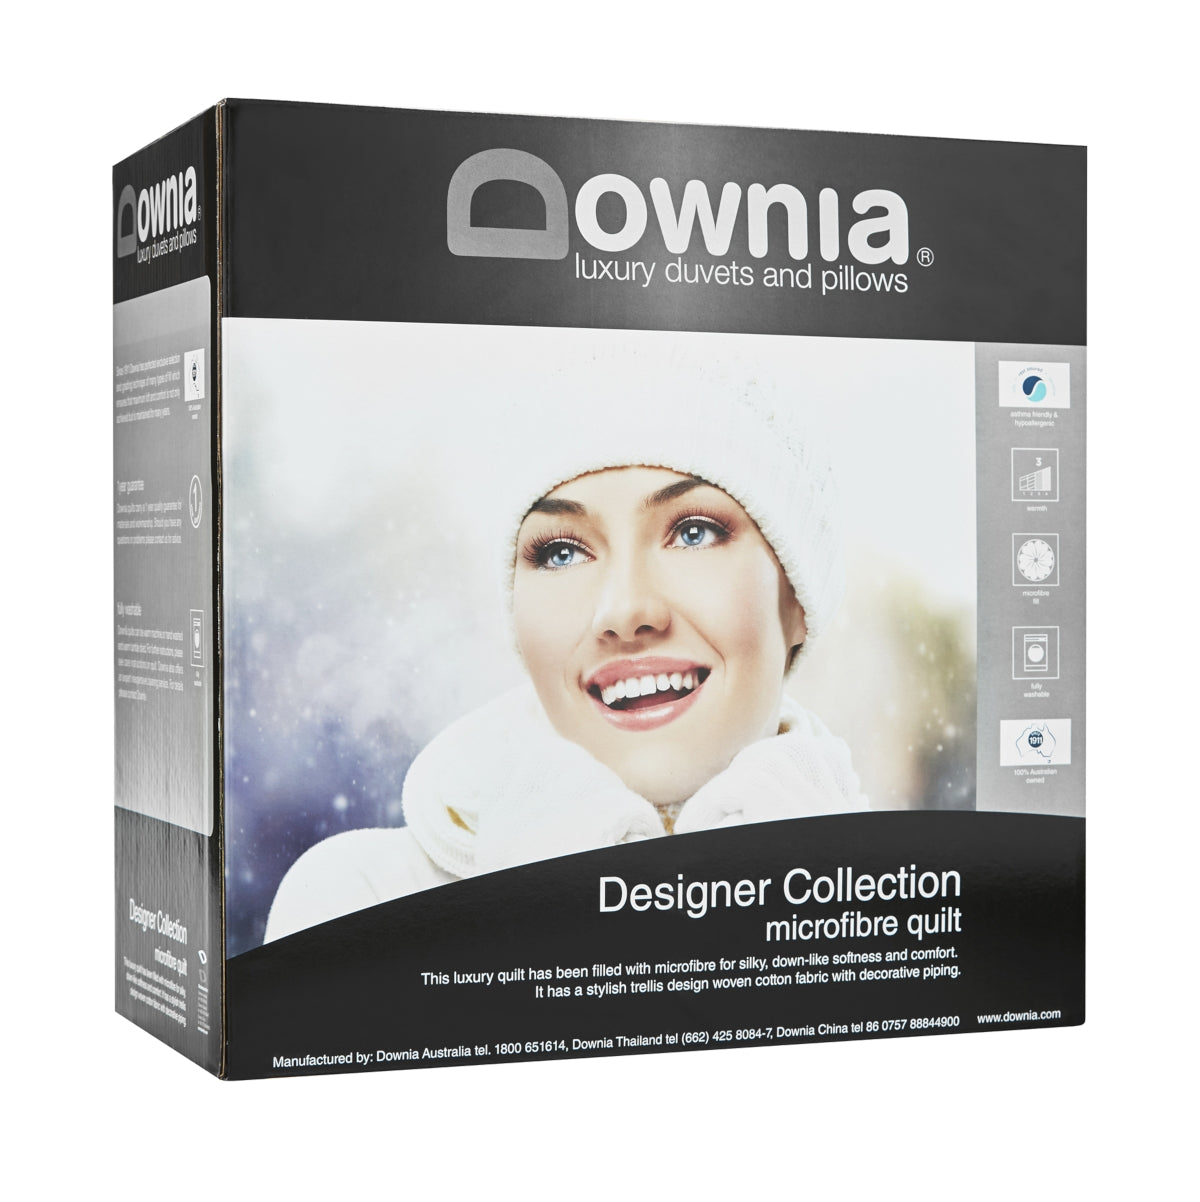 Downia Designer Collection Microfibre Quilt